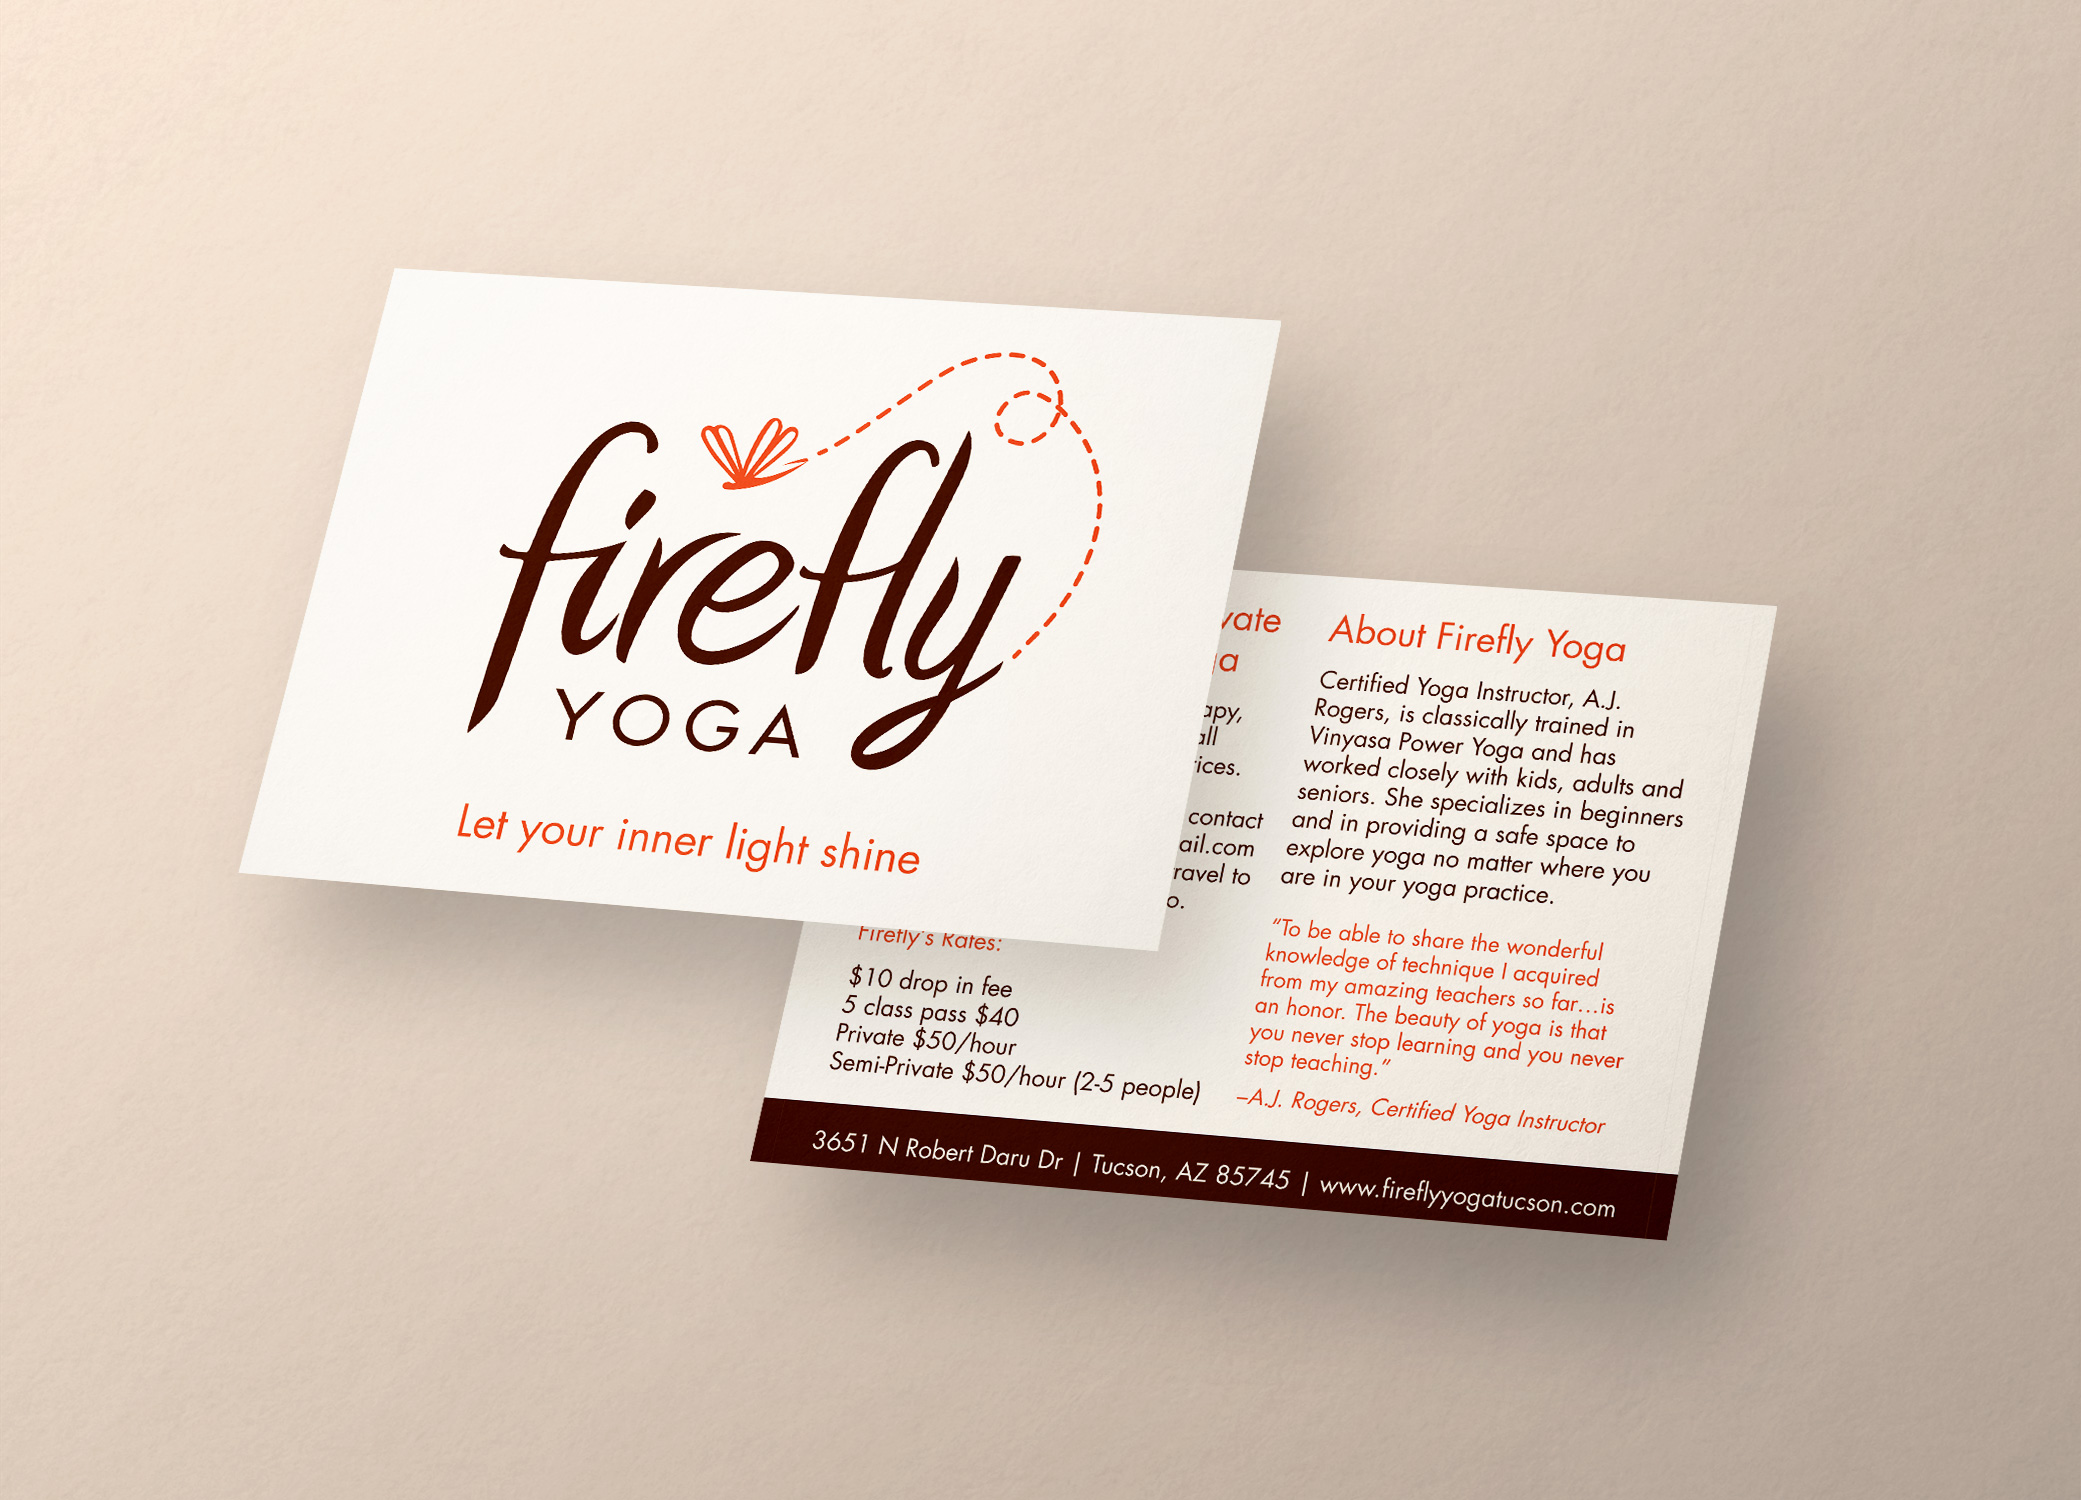 Firefly Yoga postcard front and back view providing more information about the brand and its services.